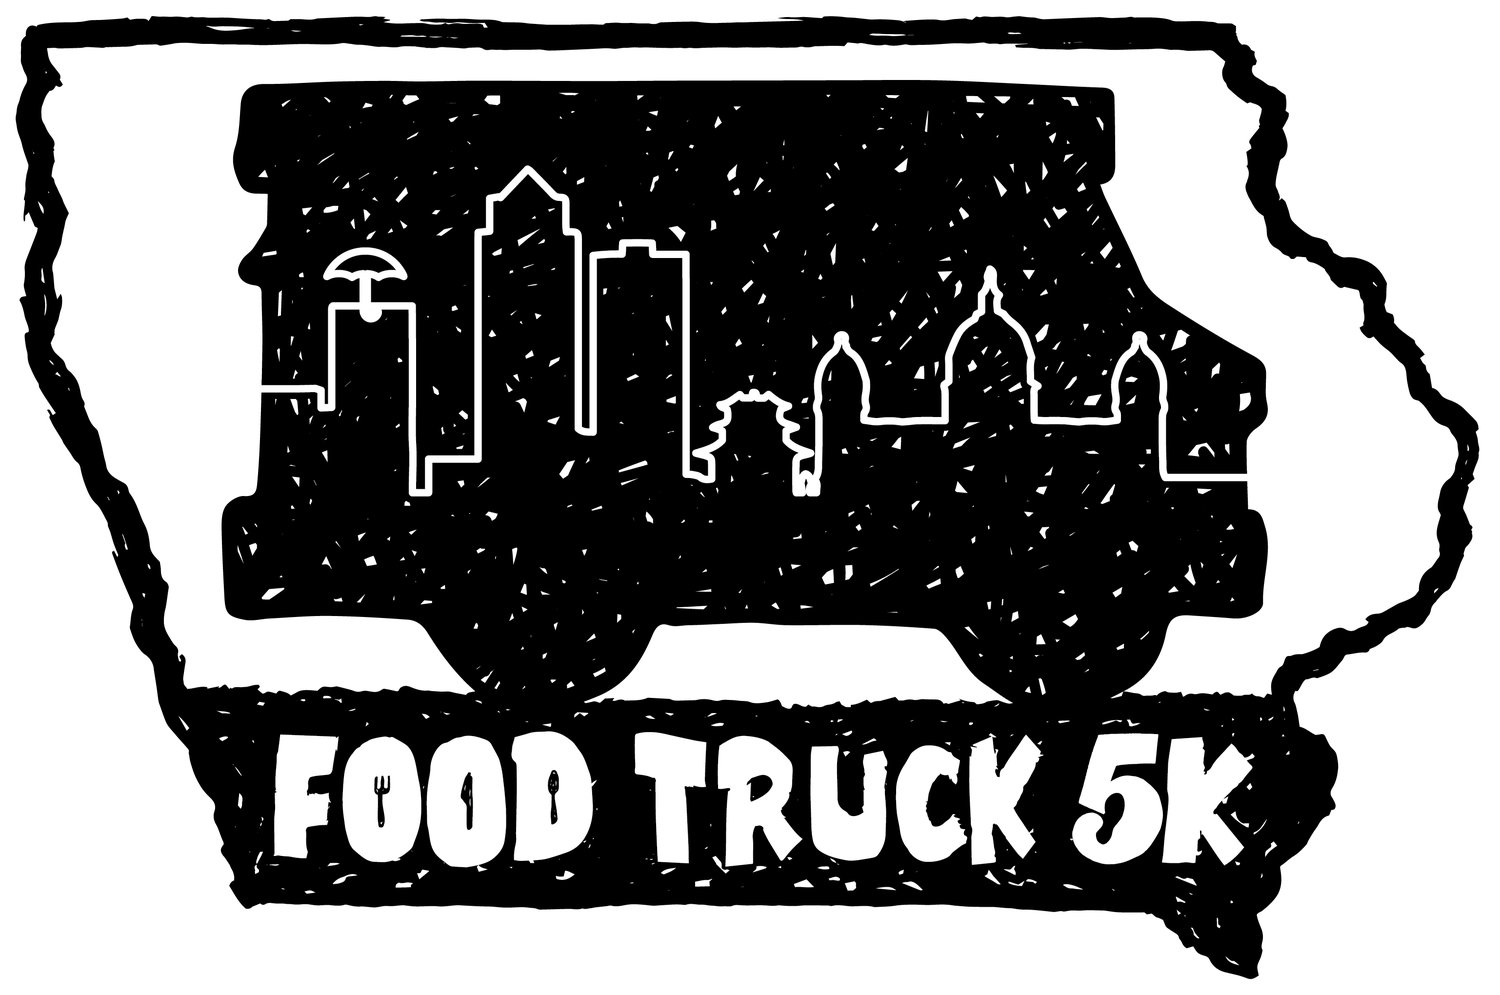 DSM FoodTruck 5K